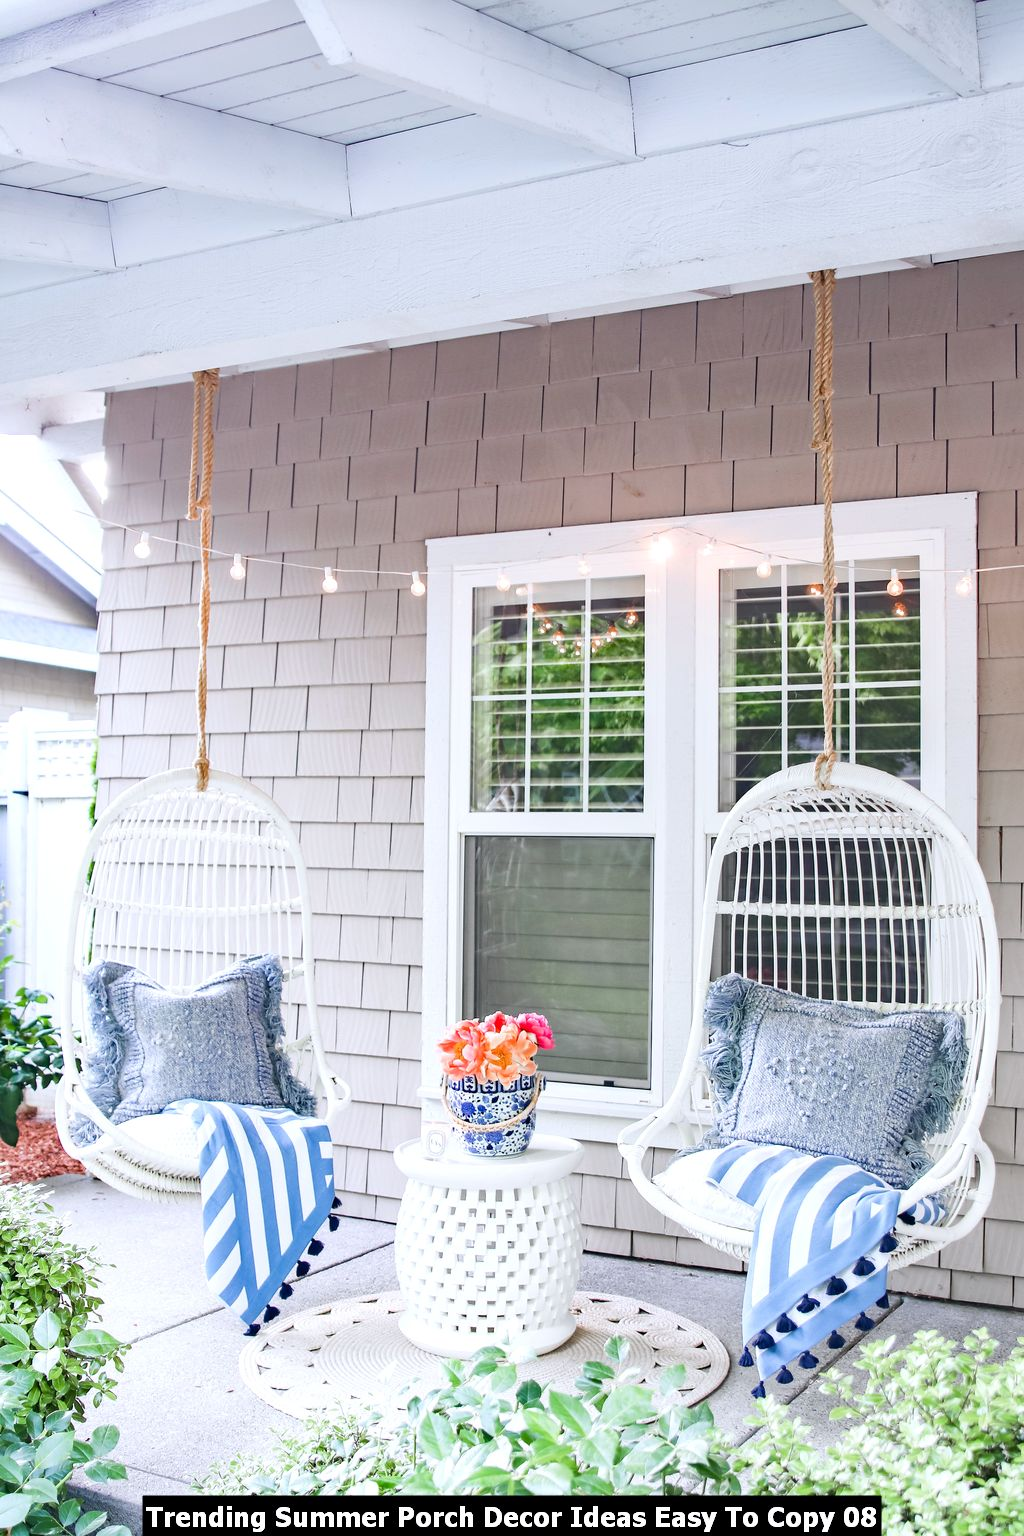 Trending Summer Porch Decor Ideas Easy To Copy 08